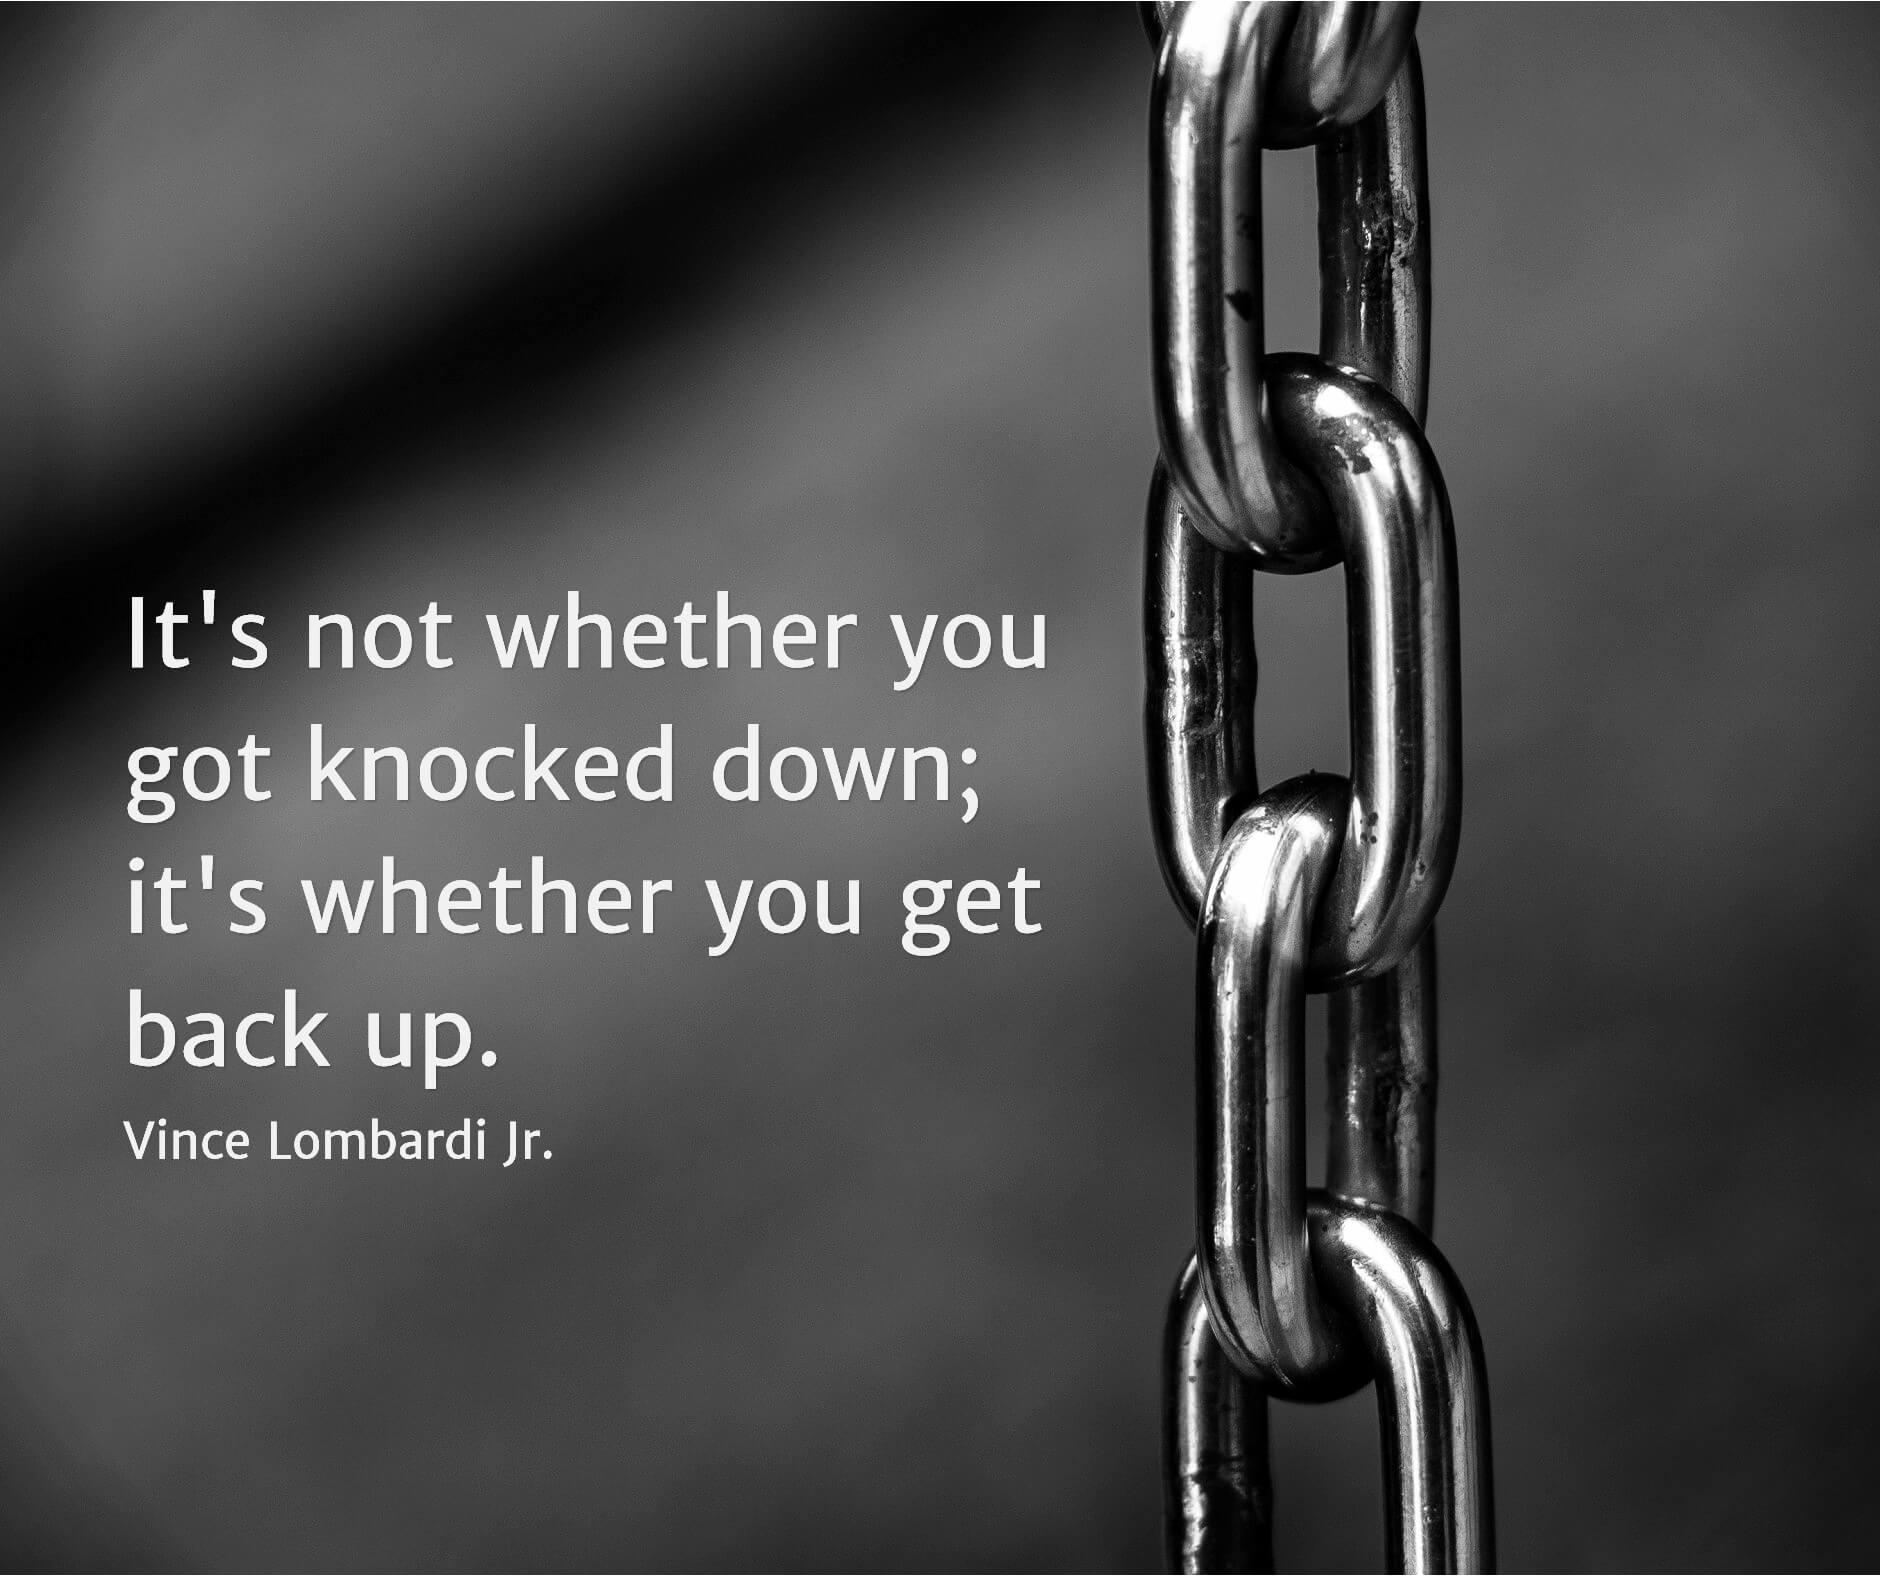 It's not whether you got knocked down, it's whether you got back up.